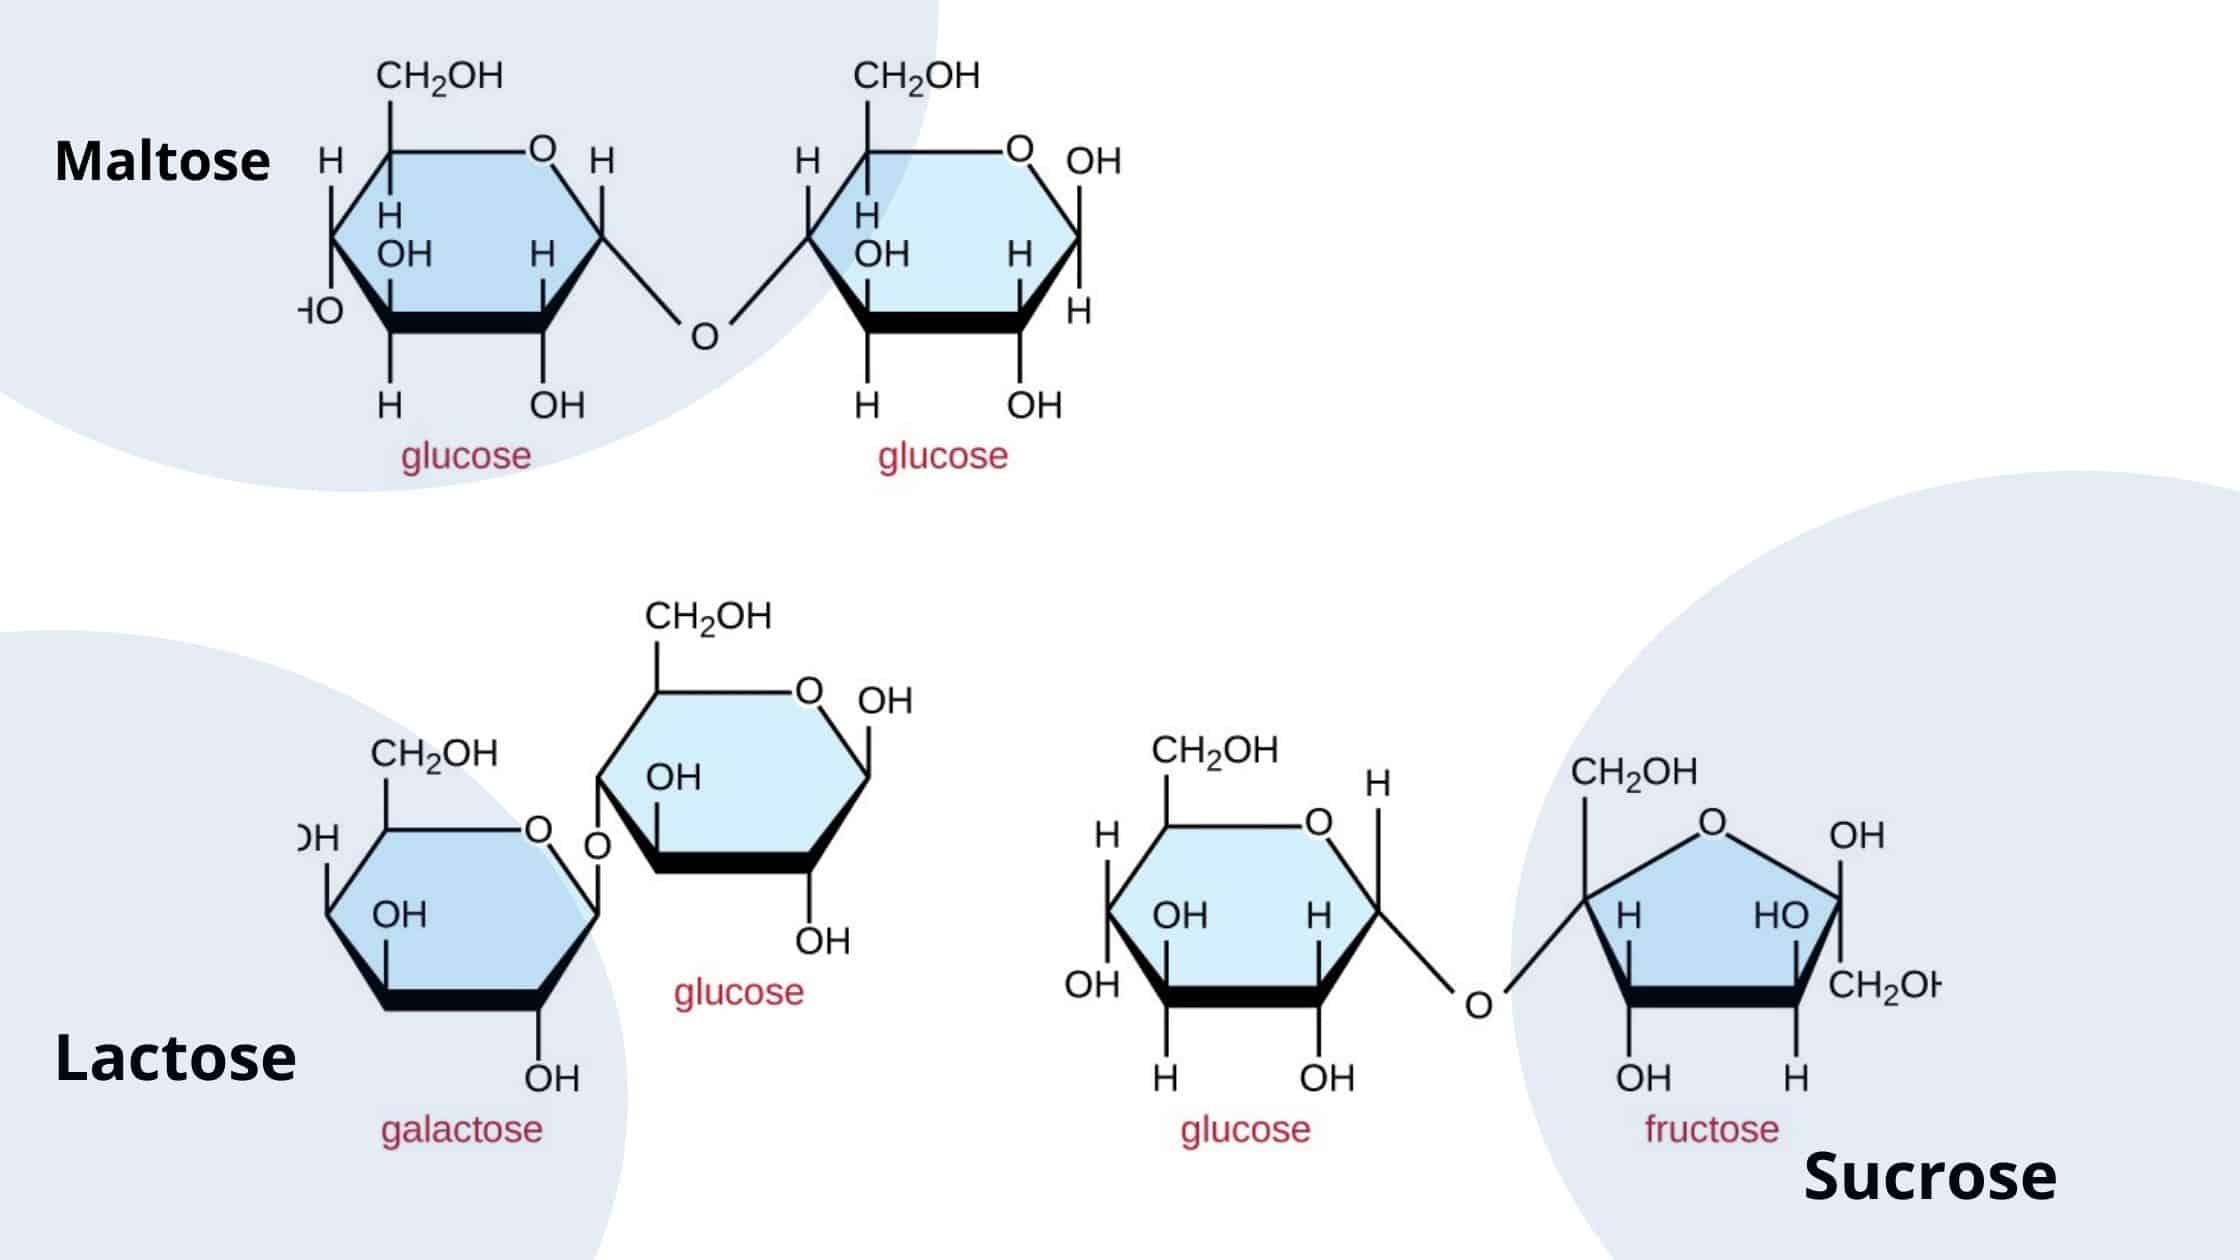 sucrose, lactose, and maltose.